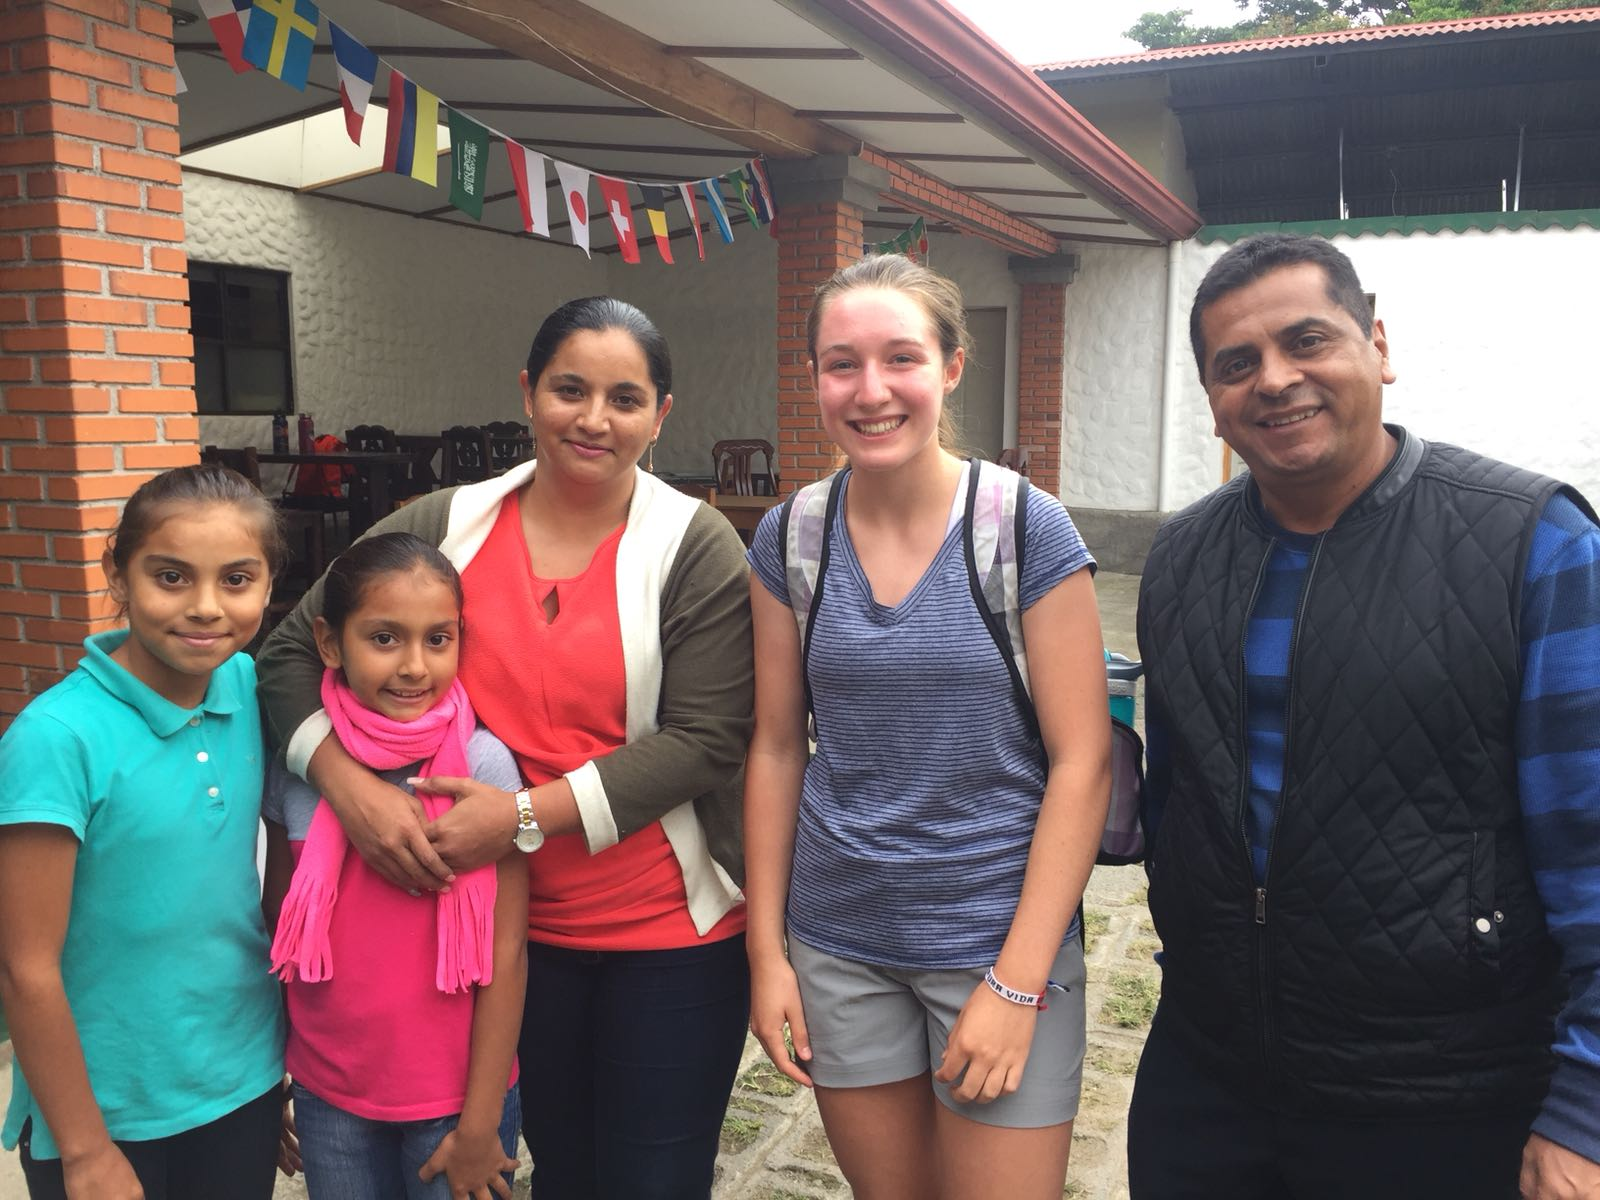 First Week on Immersion in Costa Rica: Host Families and Community Service